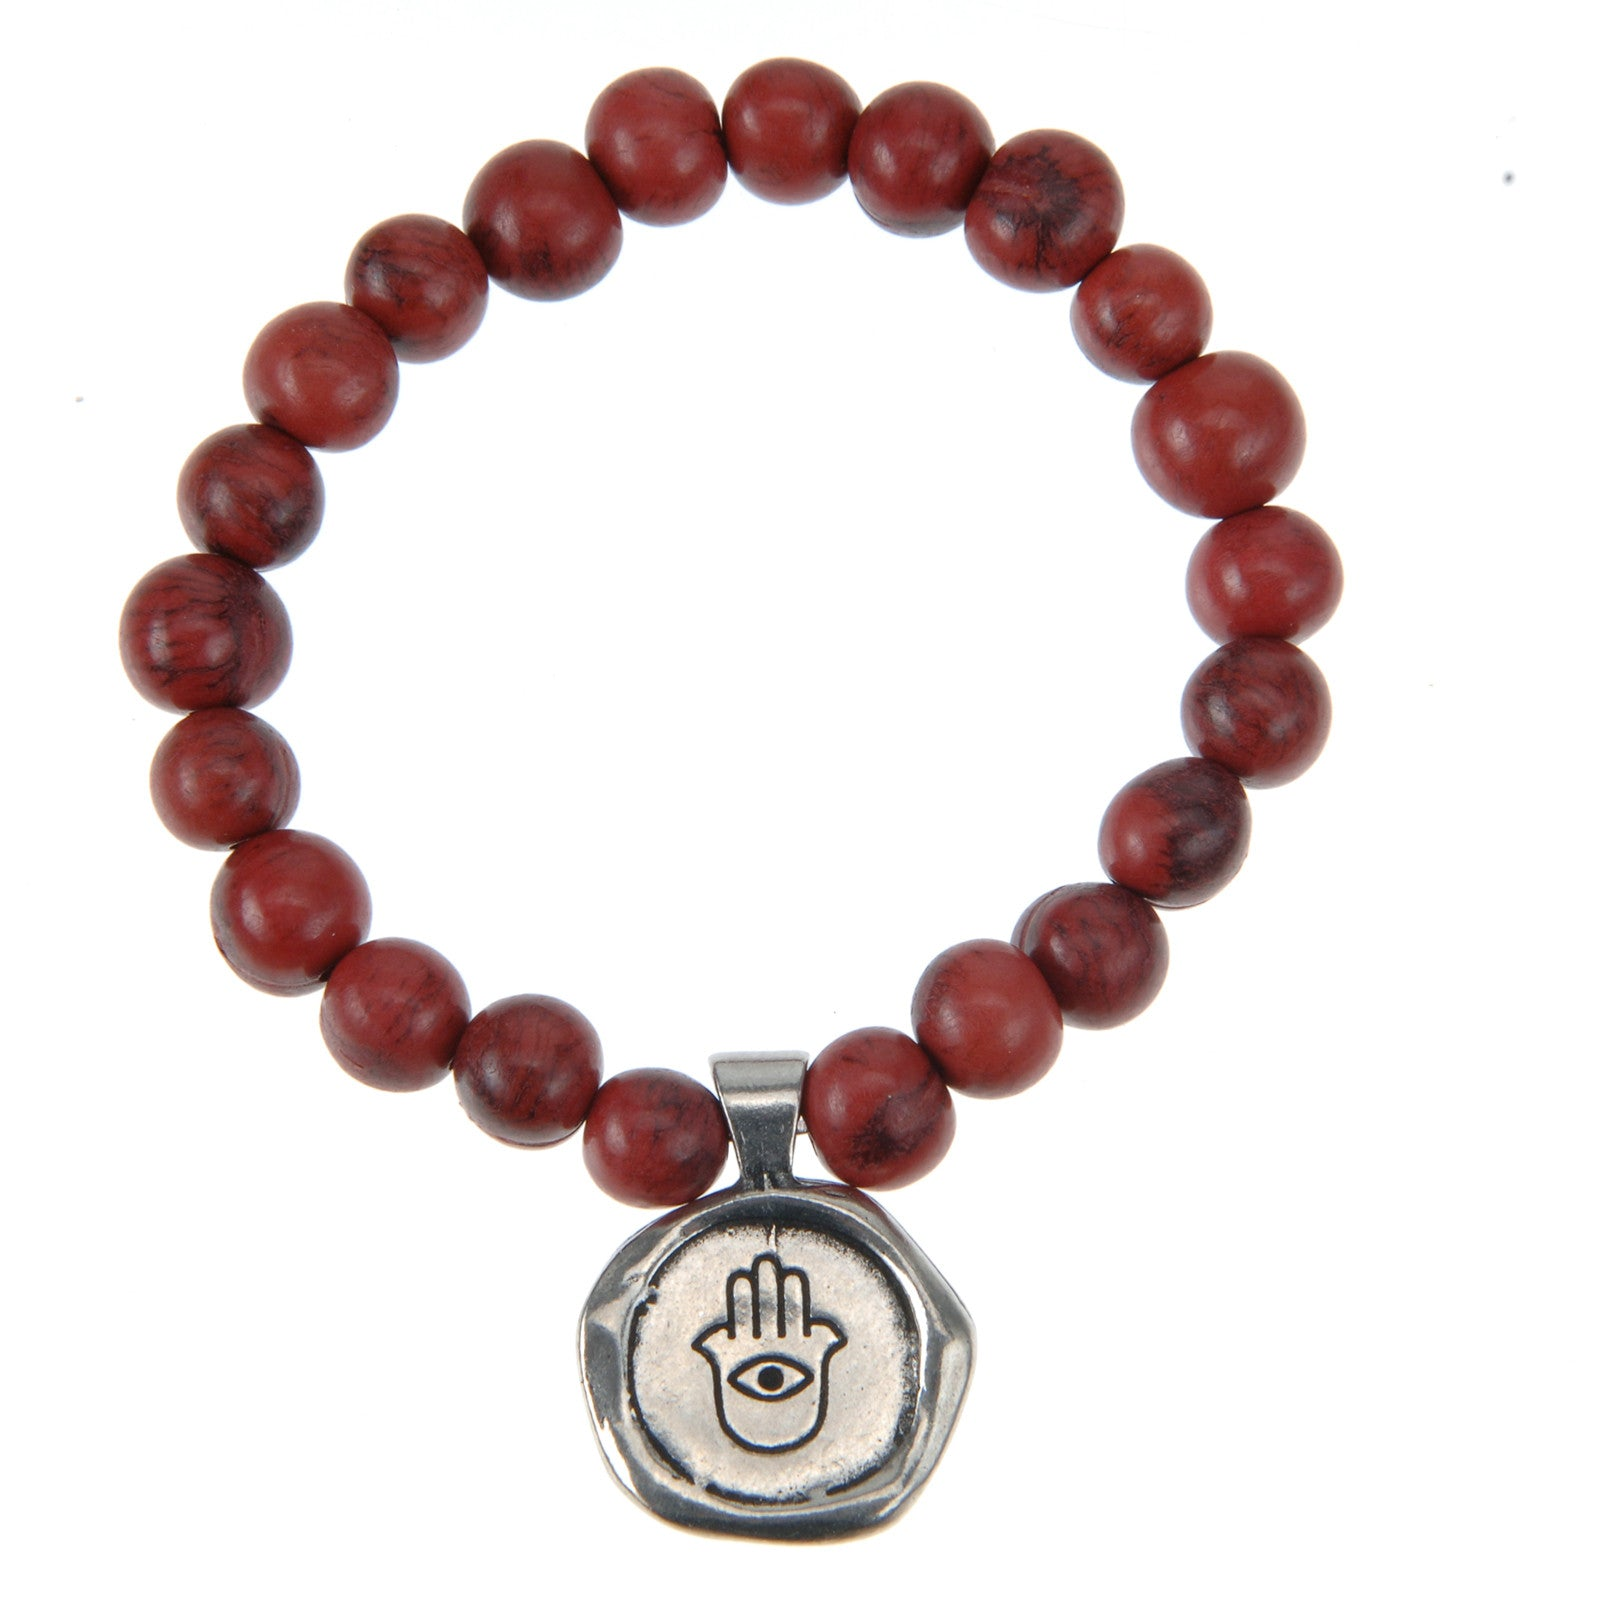 Wax Seals on Acai Seeds Of Life Bracelet - Whitney Howard Designs